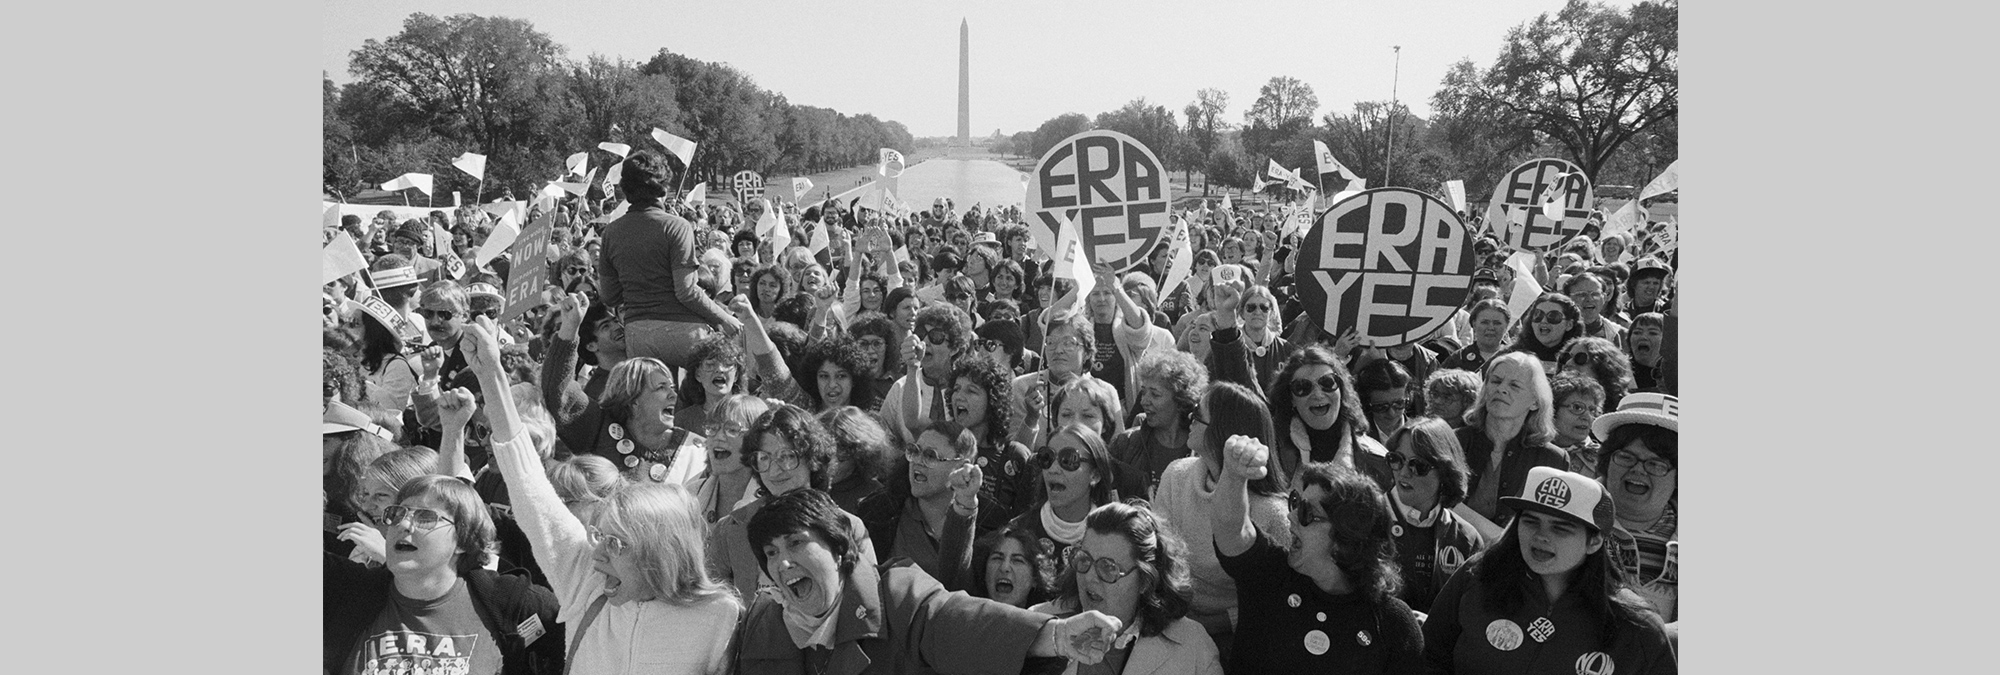 Almost 40 years ago, in 1981, women cheered during a rally for the passage of the Equal Rights Amendment. Today, Virginia, just across the Potomac River, could become the crucial 38th state to approve the constitutional change.